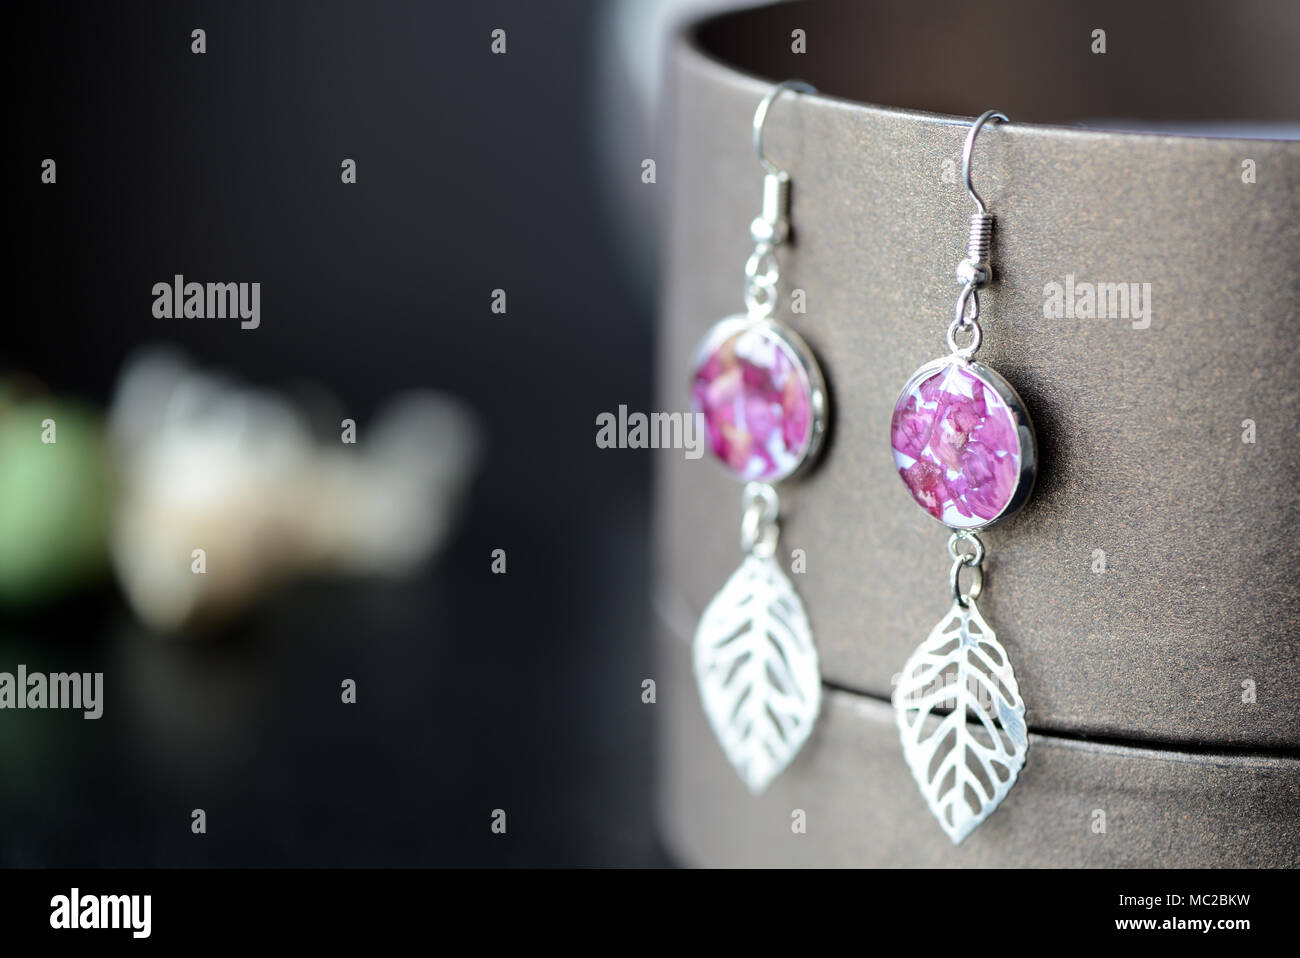 a222454d1 Dangle earrings made of epoxy resin and dried rose petals close up - Stock  Image